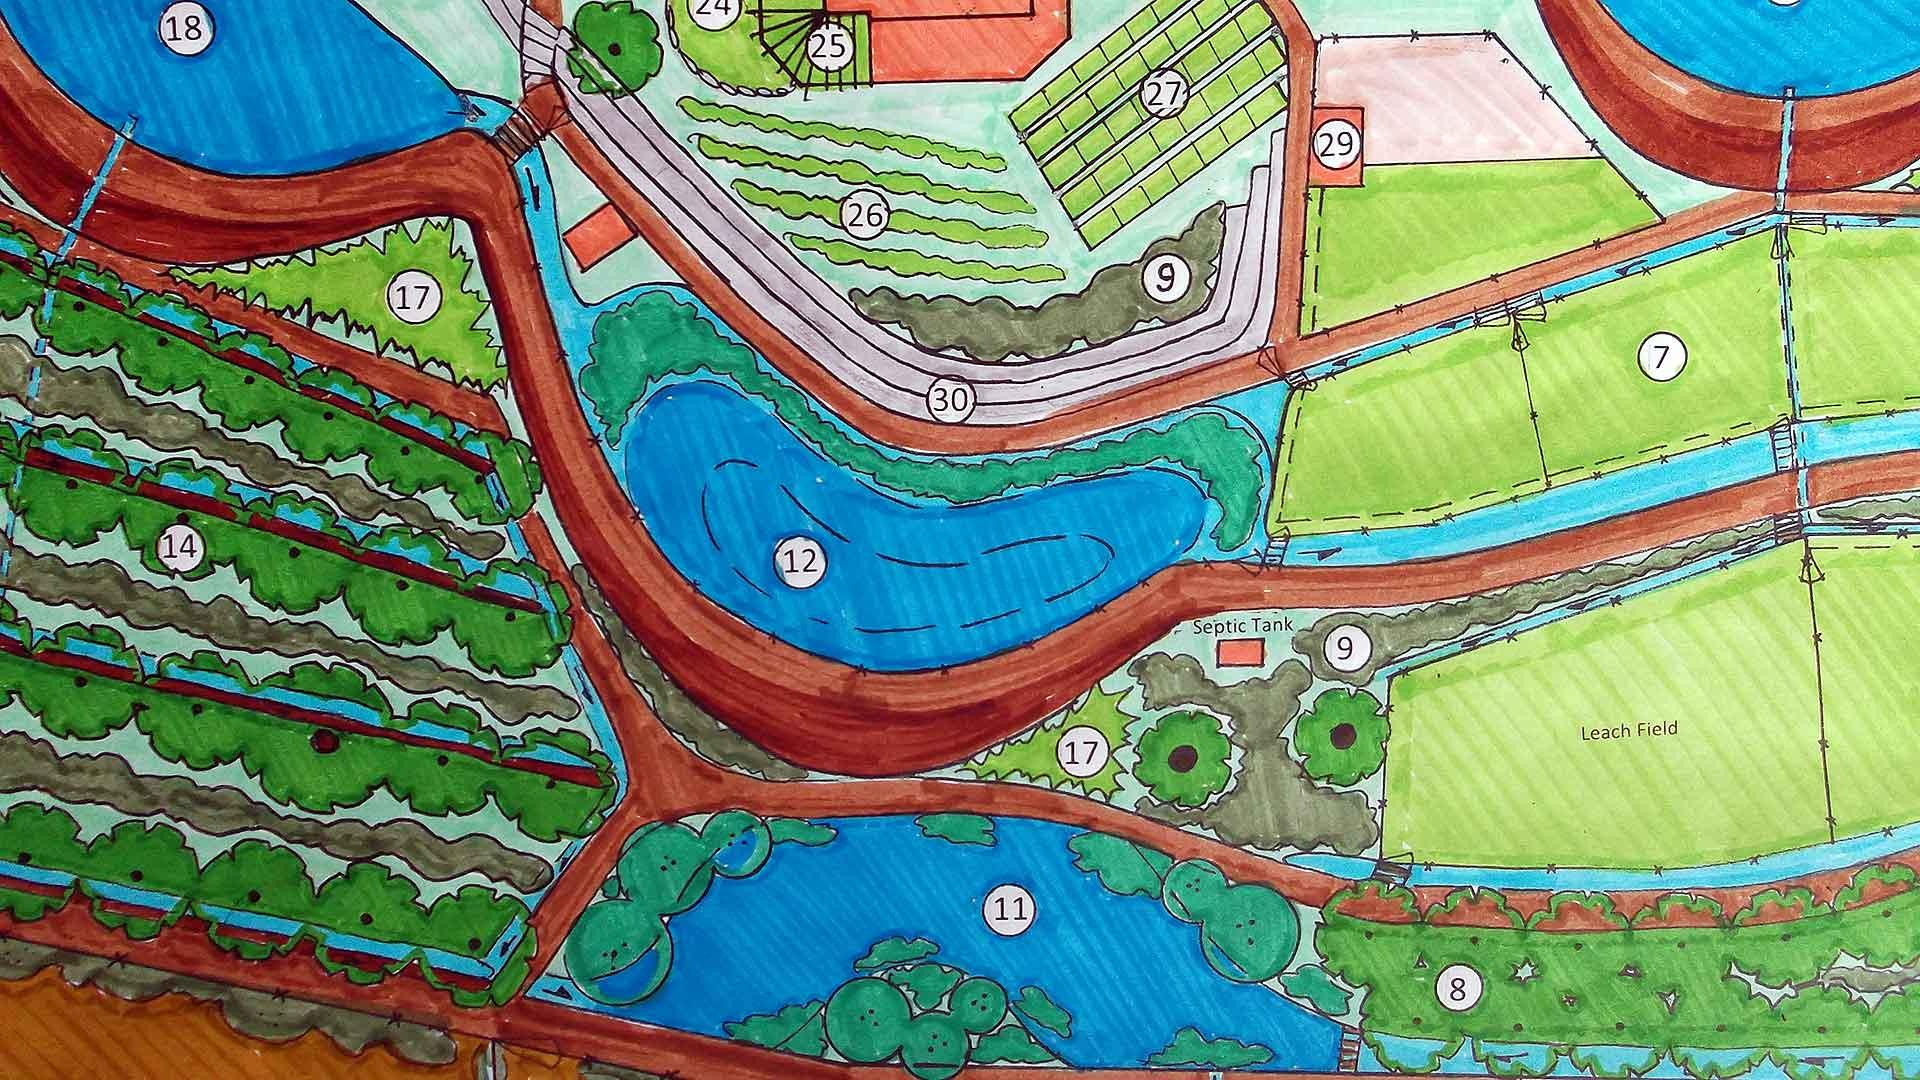 Urban gardening design - Permaculture Design Certificate Professional And